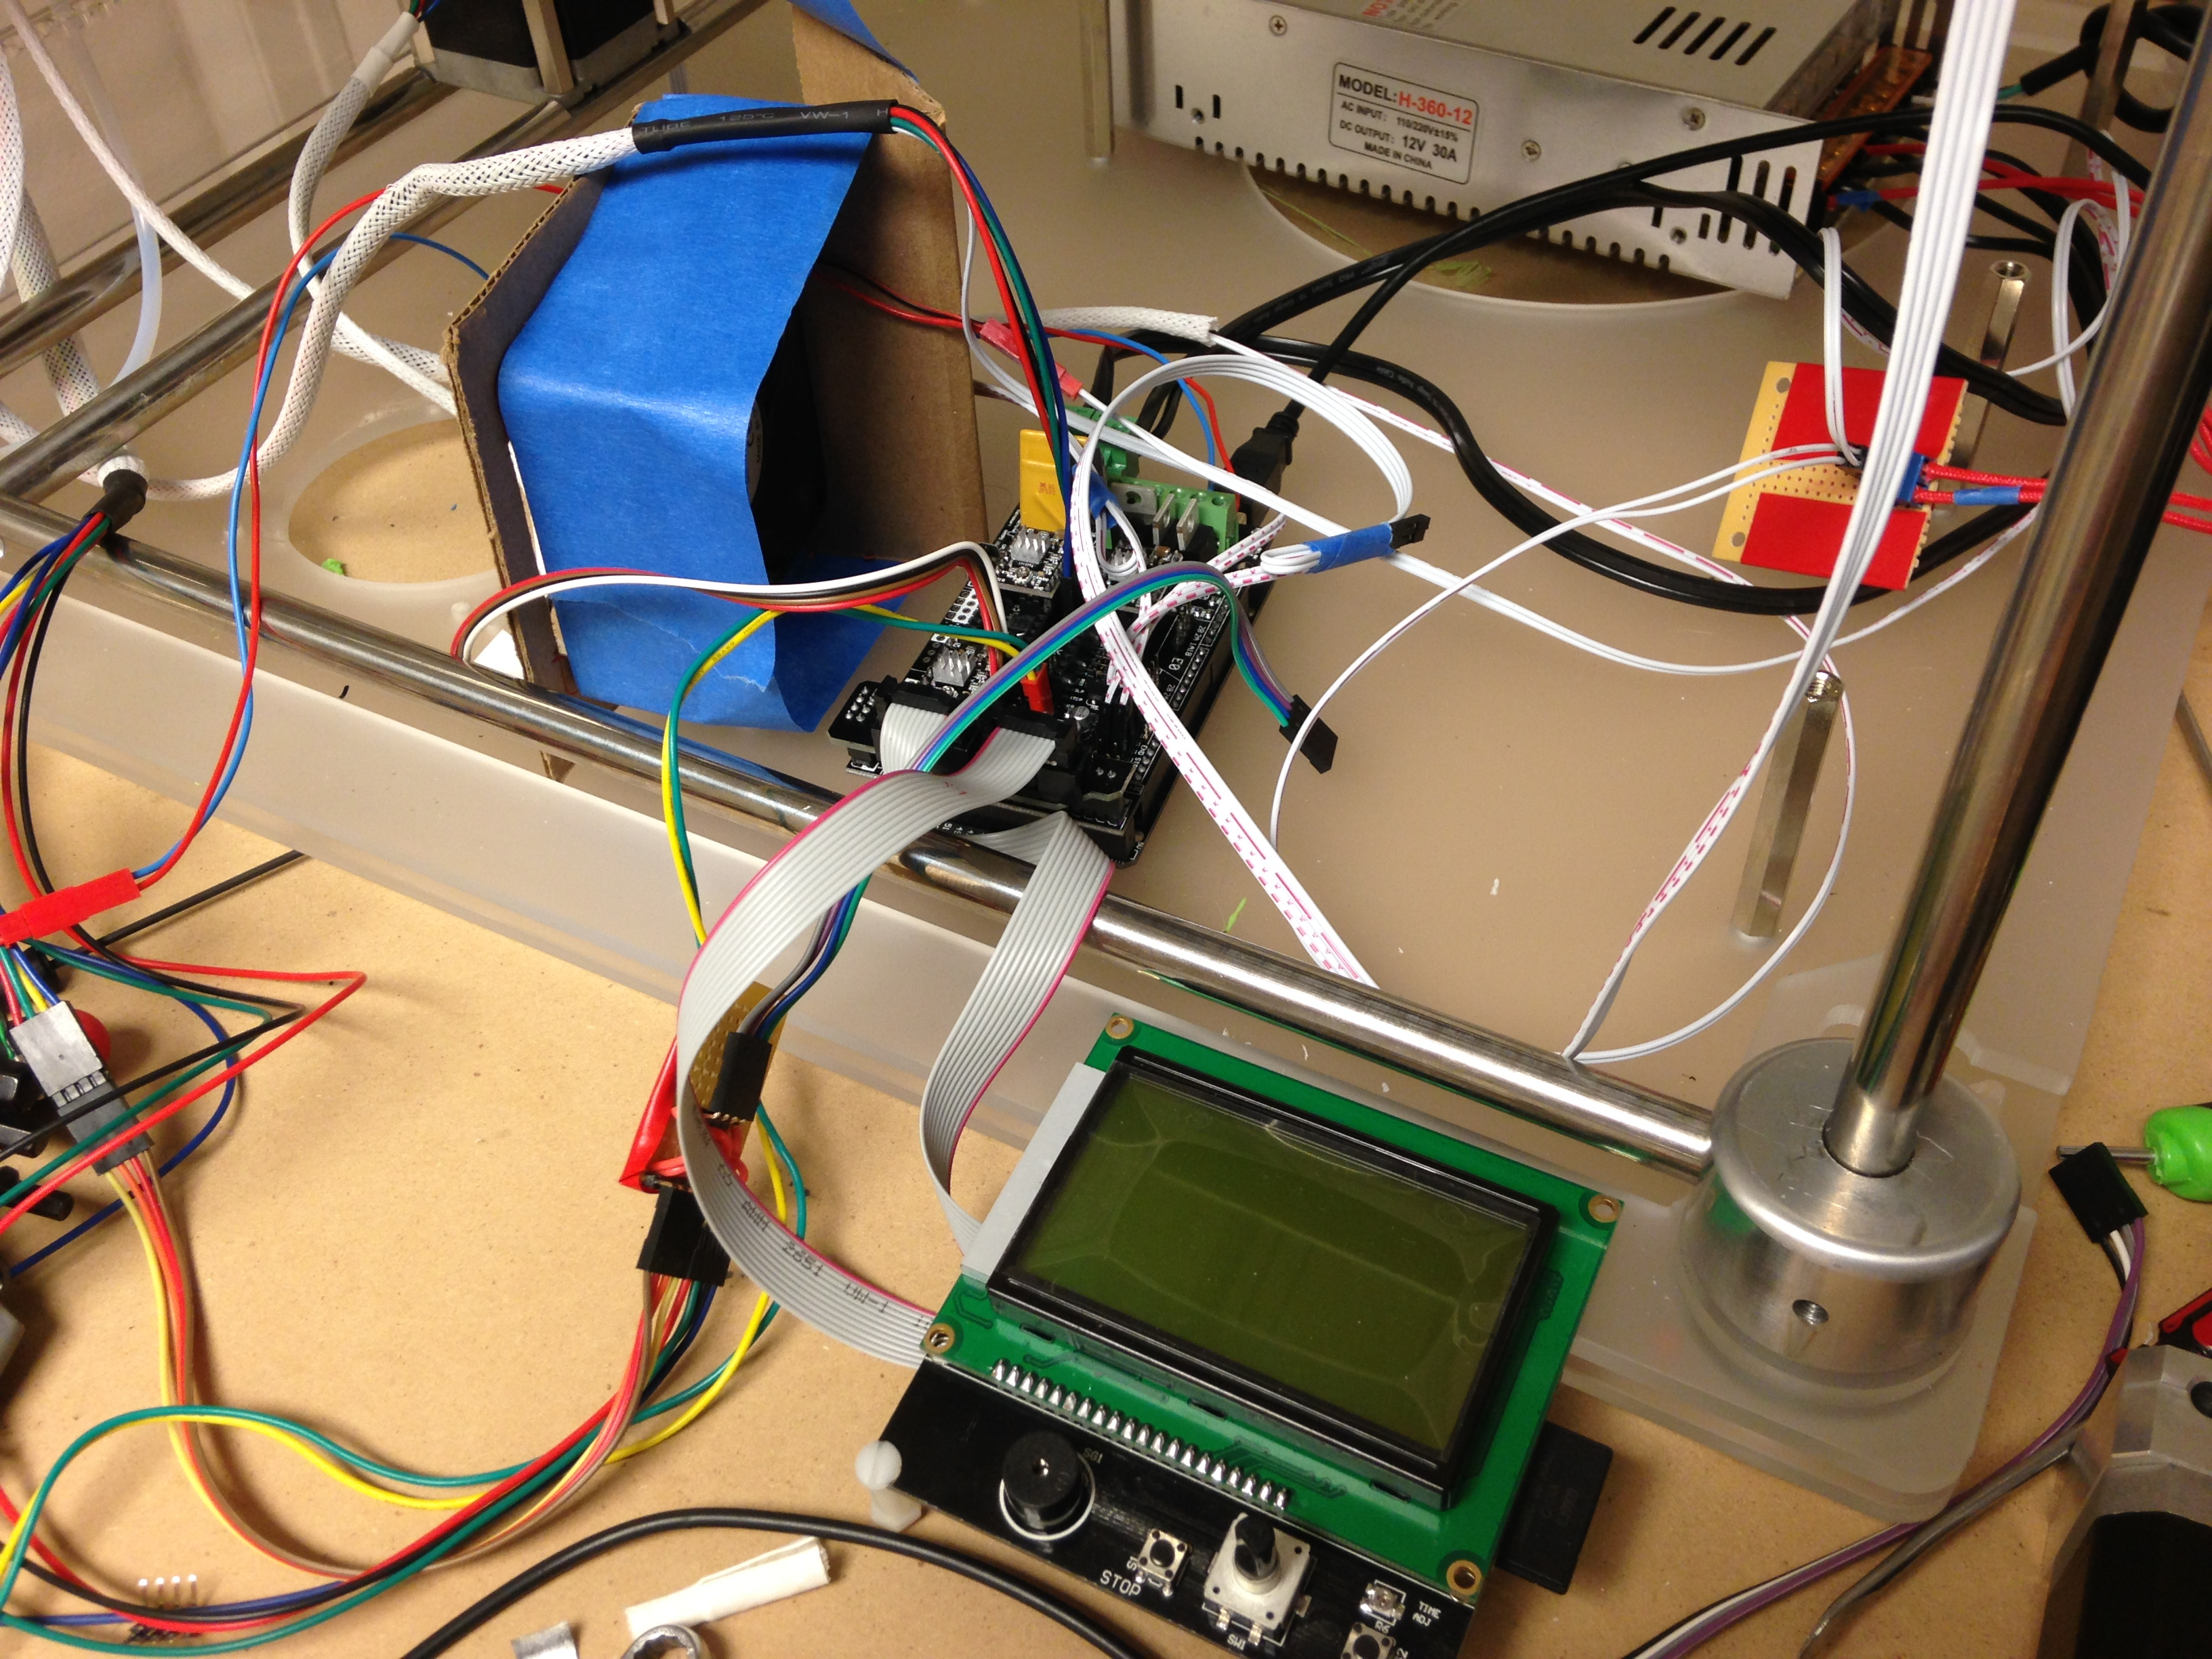 Cubex Reprap 3d Printers Talk Manufacturing Hubs Wiring Further Cnc Limit Switches On Honeywell Micro Switch Image 94jpeg3264x2448 233 Mb